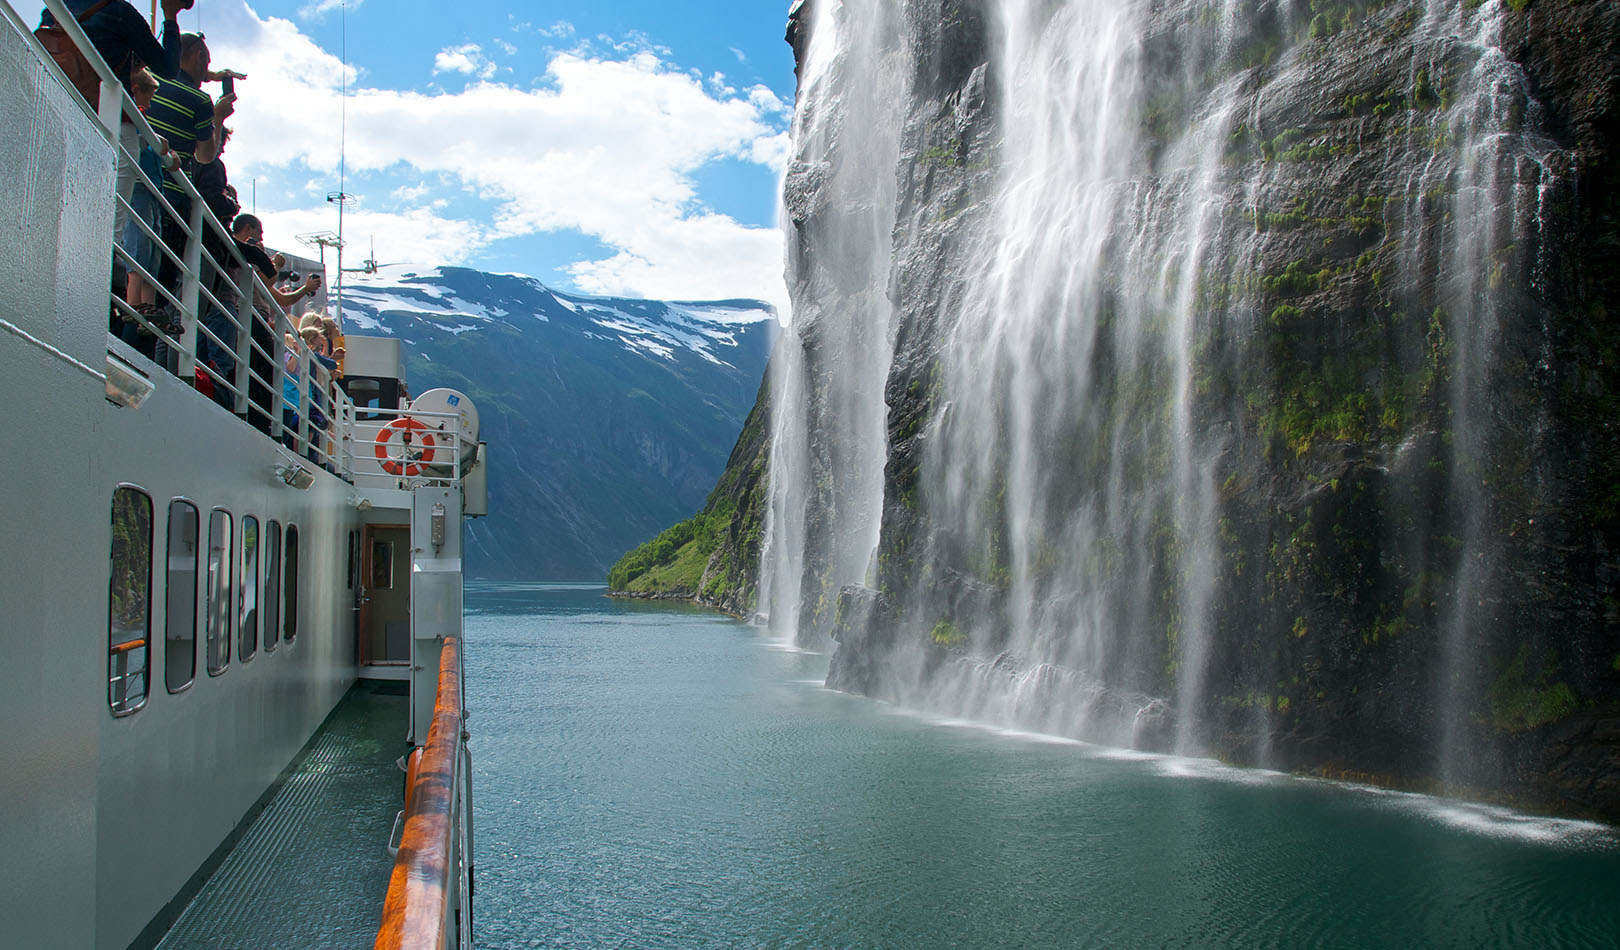 Ferry close til the waterfalls The brides veil in the Geiranger fjord.